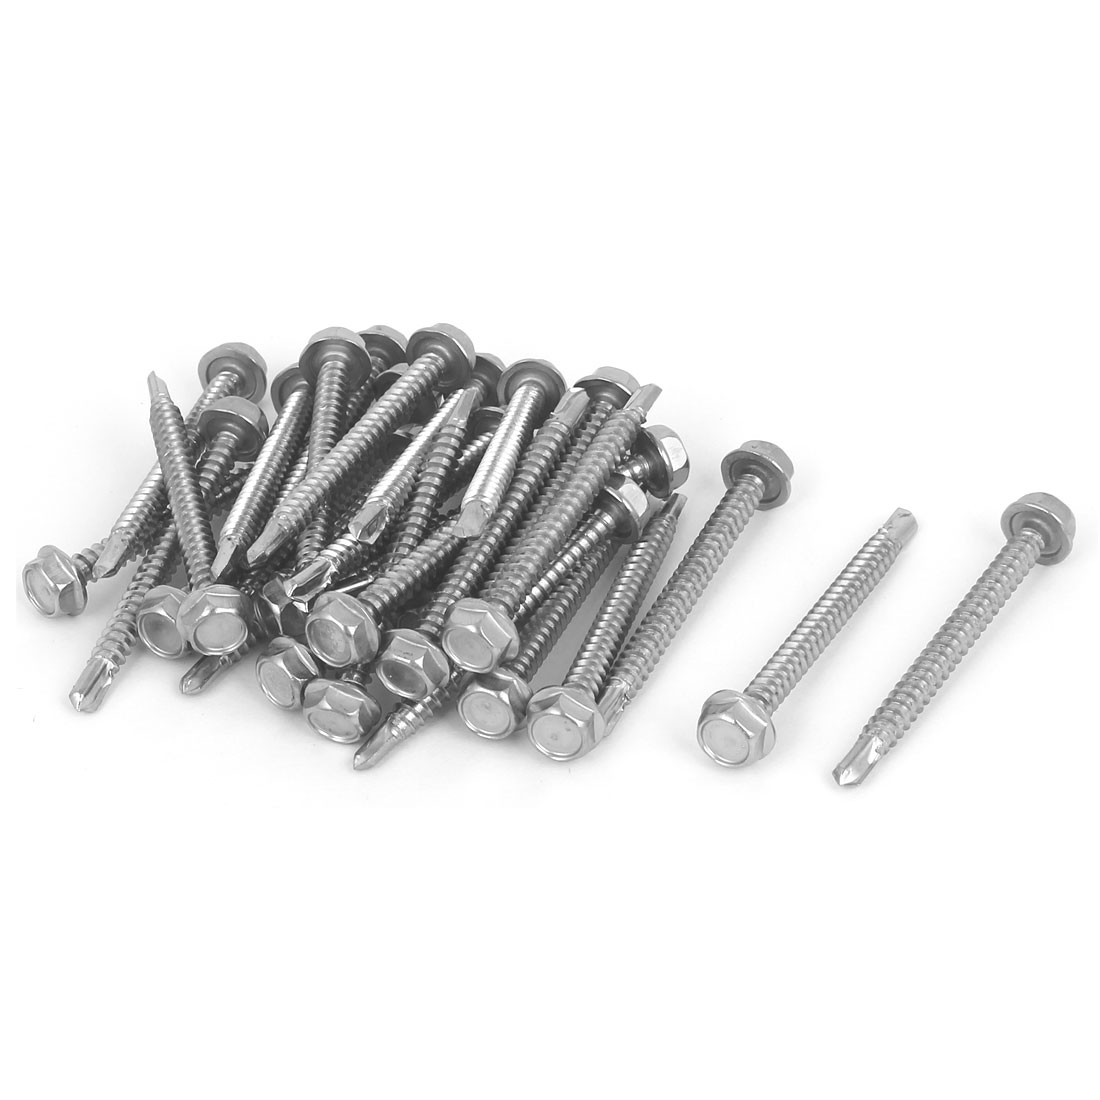 Hex Washer Head Self Tapping Drilling Screw Bolt Silver Tone M4.8x50mm #10-16 Thread 30pcs